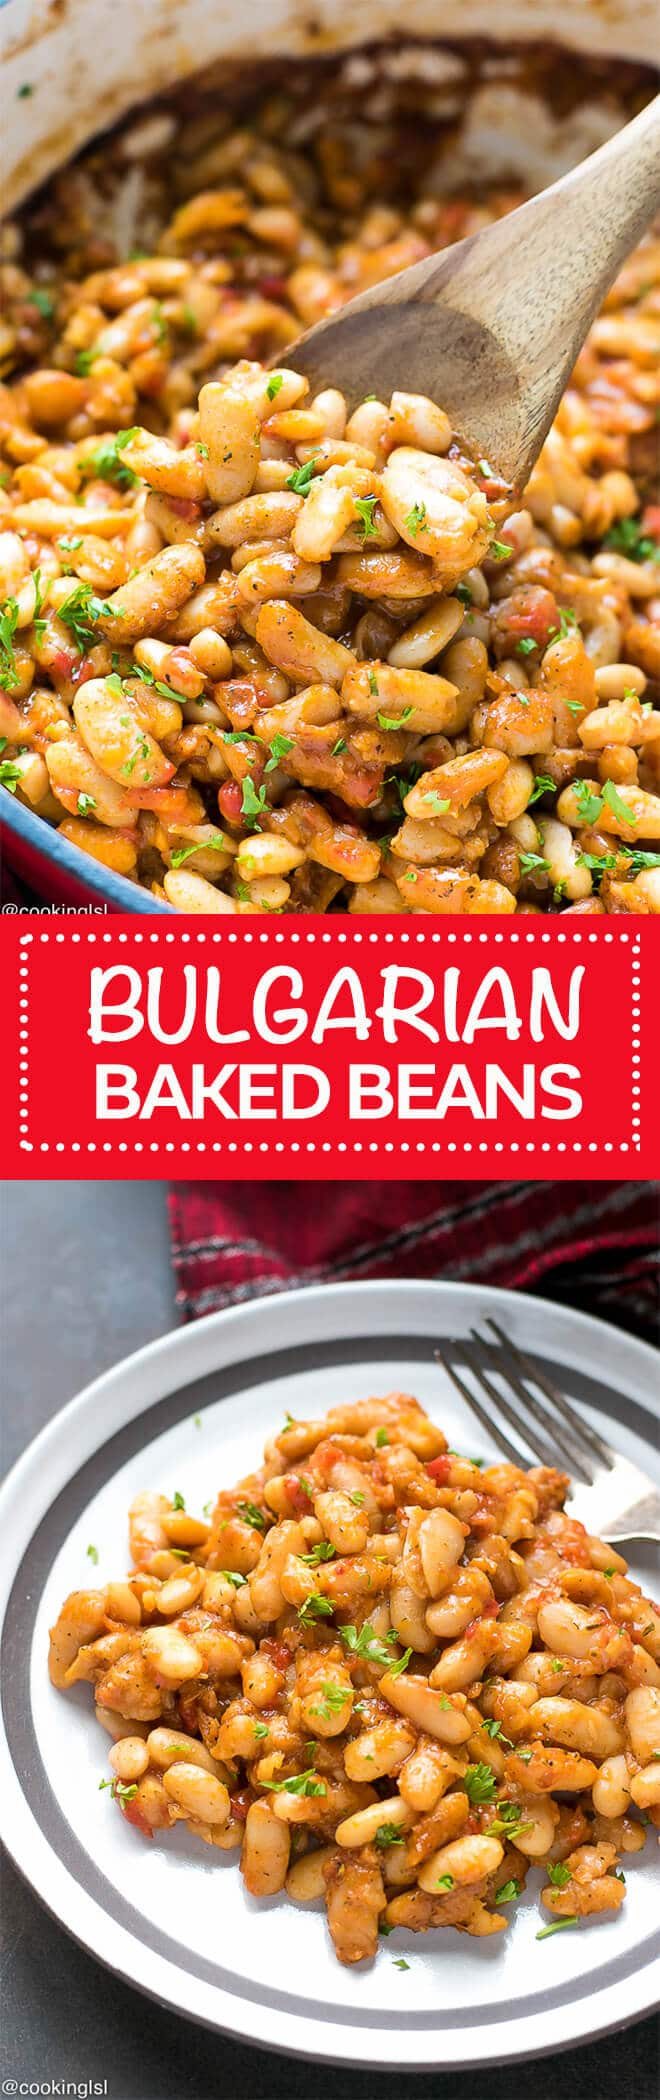 Easy Bulgarian Baked Beans Recipe - one of the easiest ways to make baked beans, with minimum ingredients, but wonderful flavor. This comfort dish is inspired by a Bulgarian recipe and perfect for the colder months of the year and holidays.